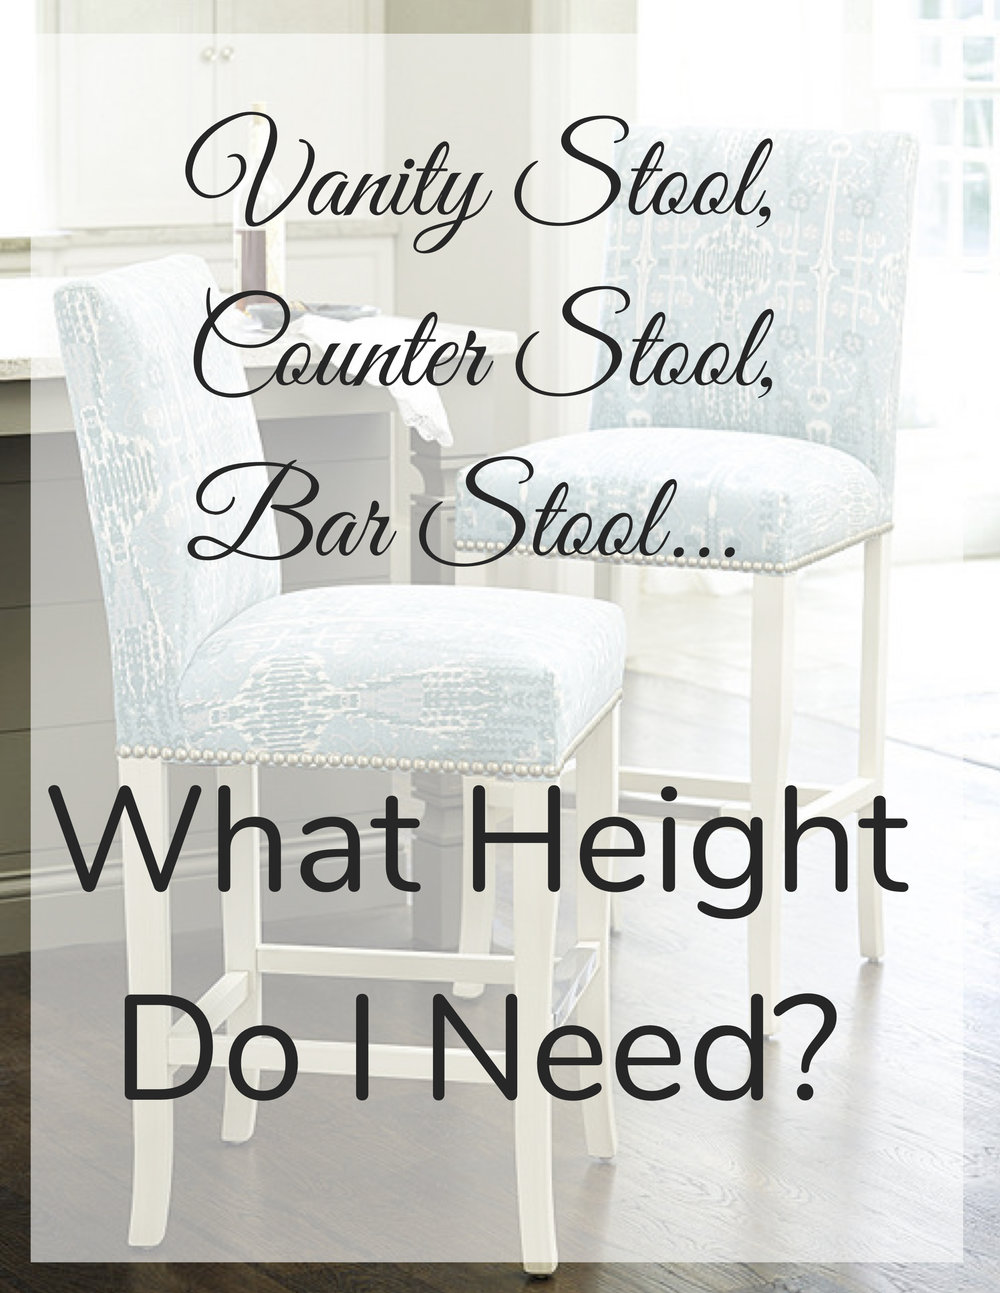 Vanity Stool,Counter Stool,Bar Stool...What height do I need_.jpg